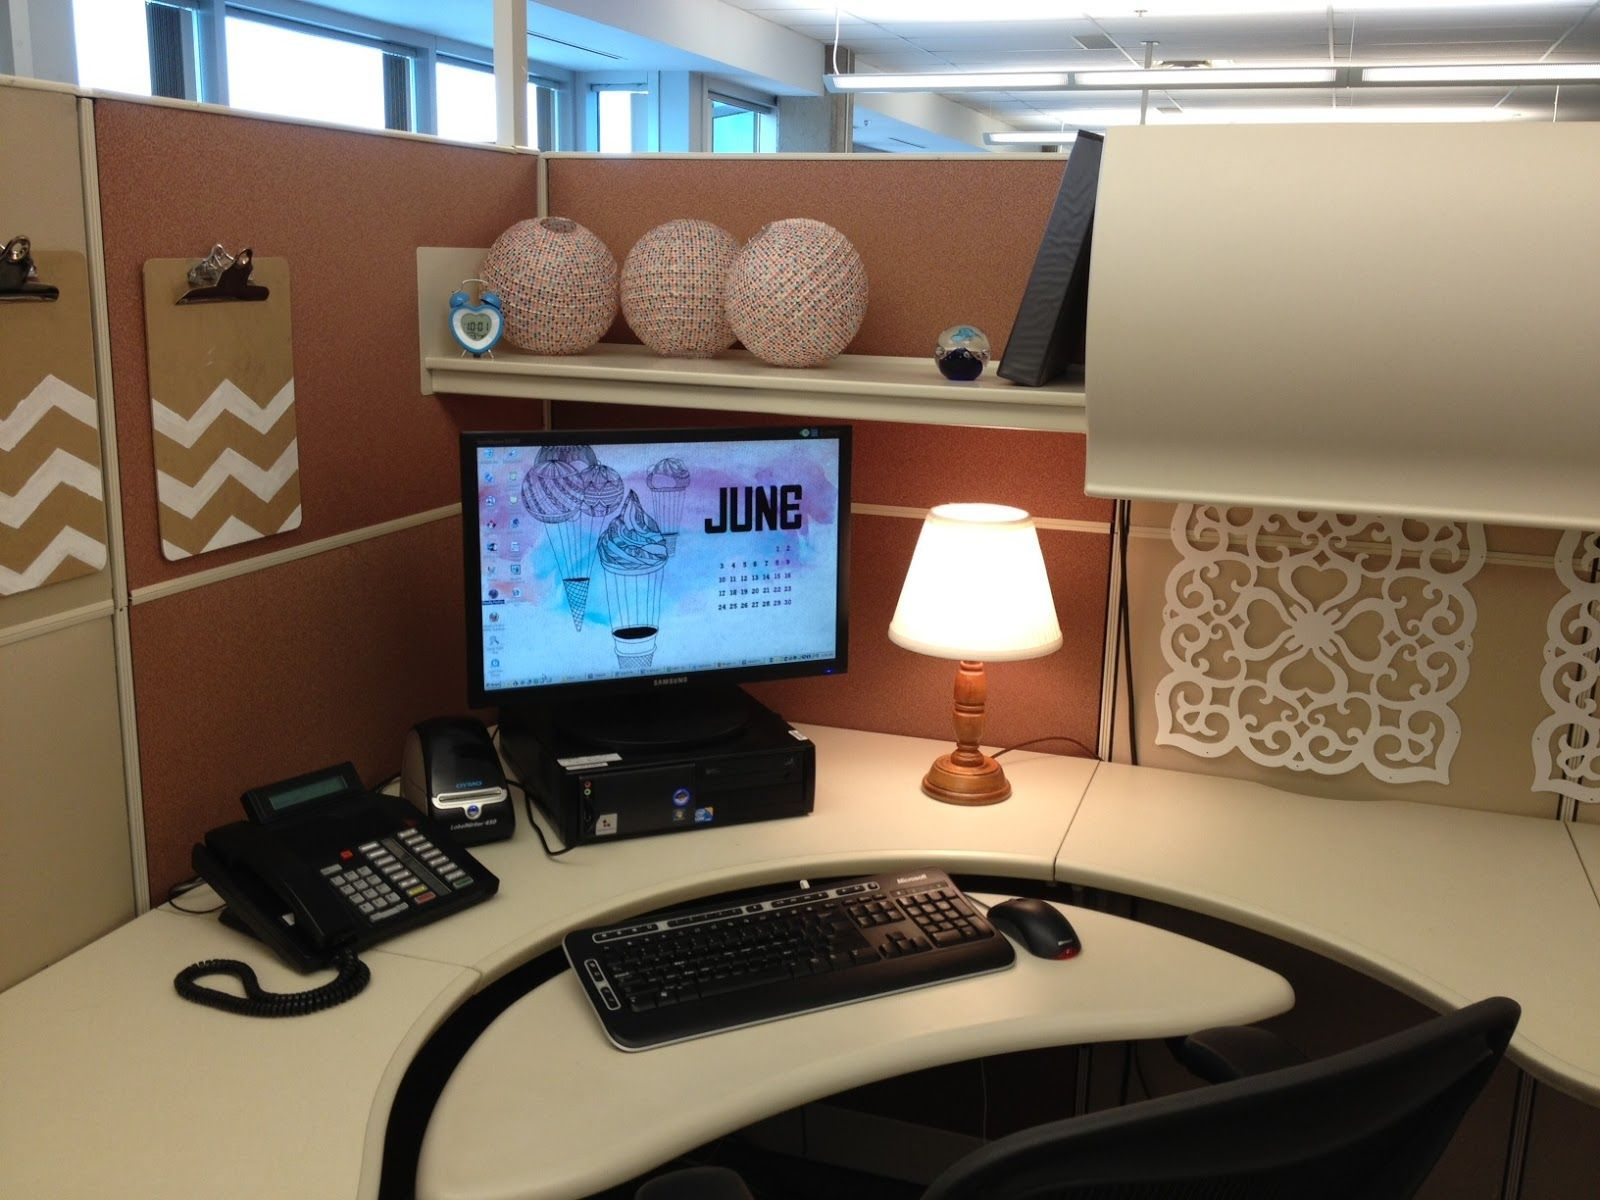 Design Cubicle Wall Decor 20 cubicle decor ideas to make your office style work as hard shelf for decor